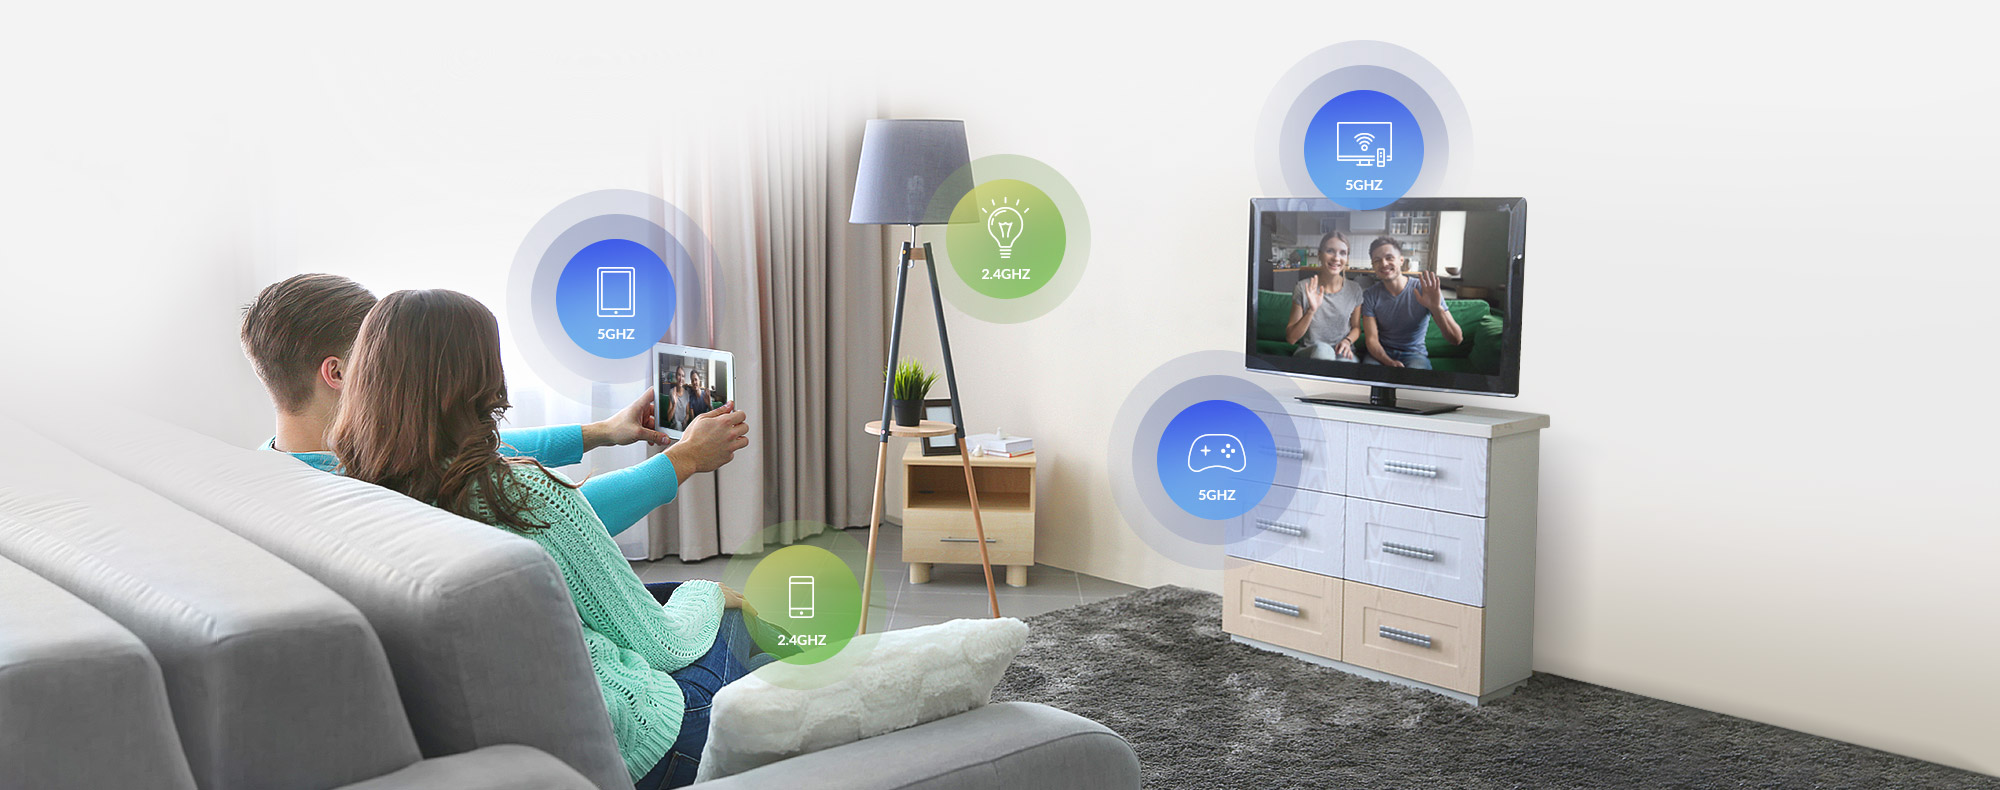 Living room with devices using different wireless bands